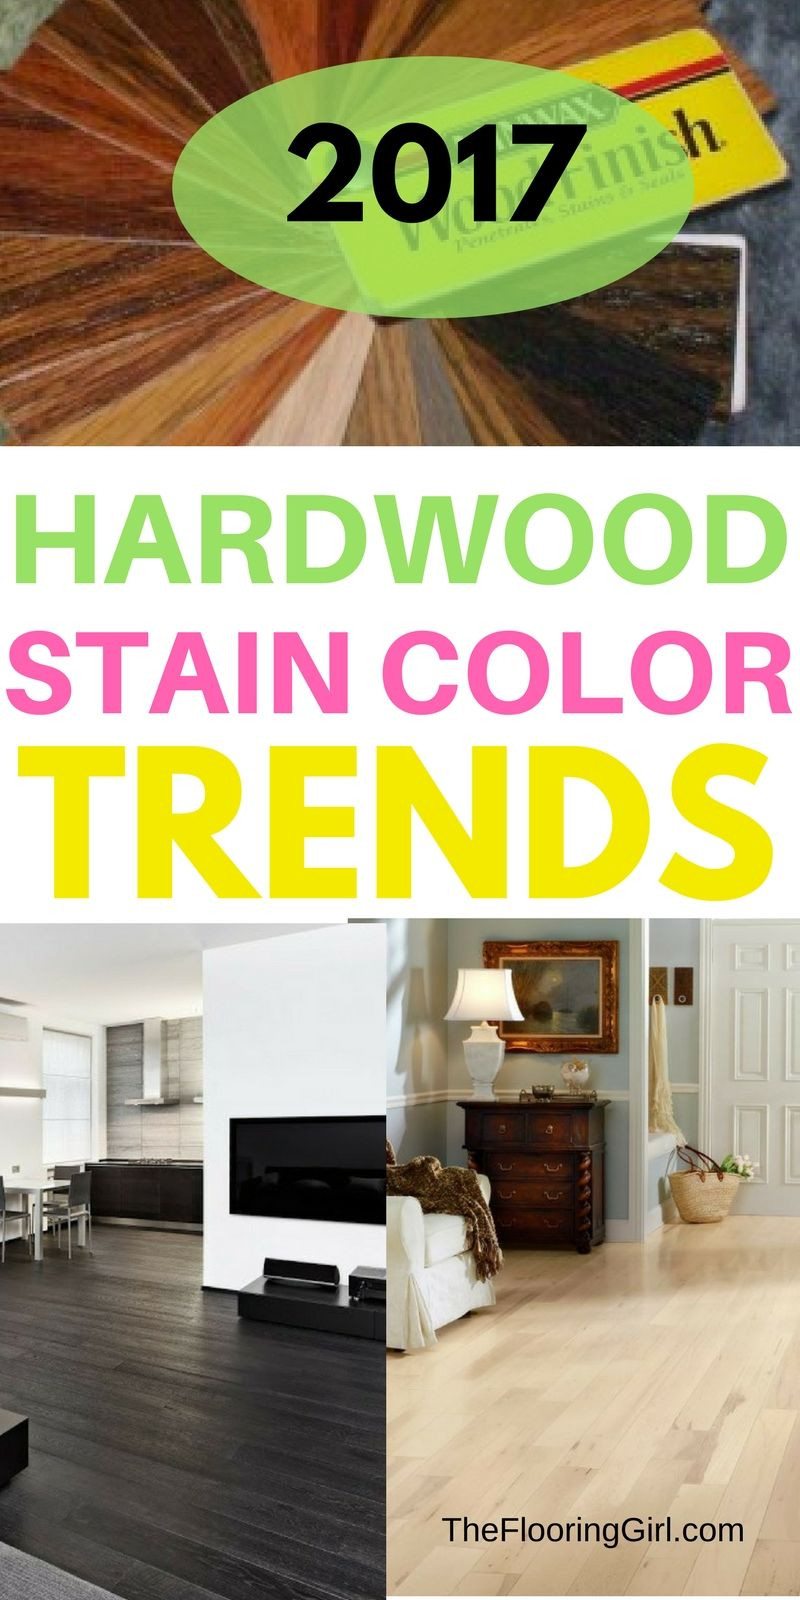 finish hardwood floors yourself of hardwood flooring stain color trends 2018 more from the flooring with regard to hardwood flooring stain color trends for 2017 hardwood colors that are in style theflooringgirl com